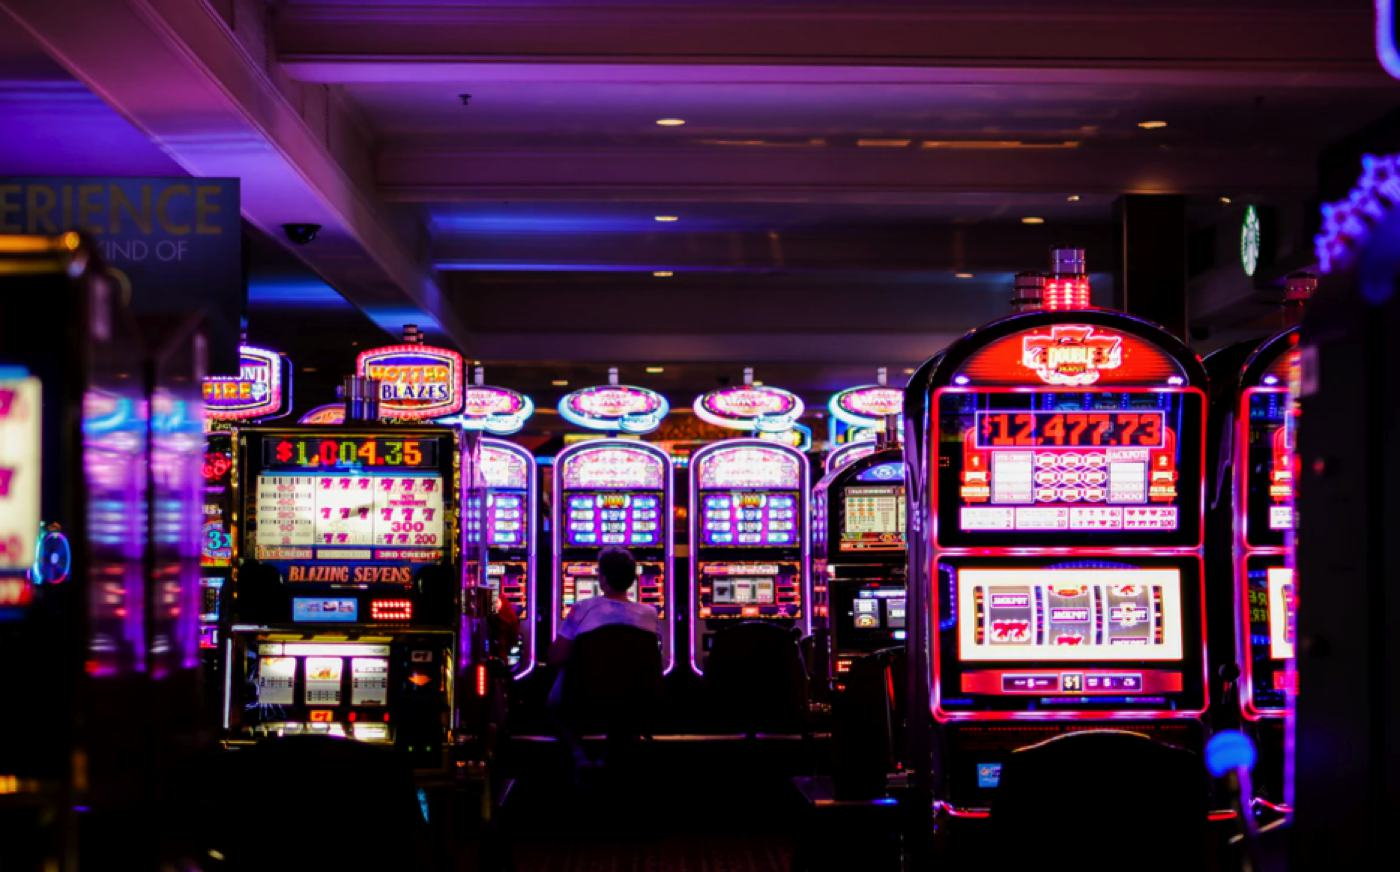 Can one make money with online slots?